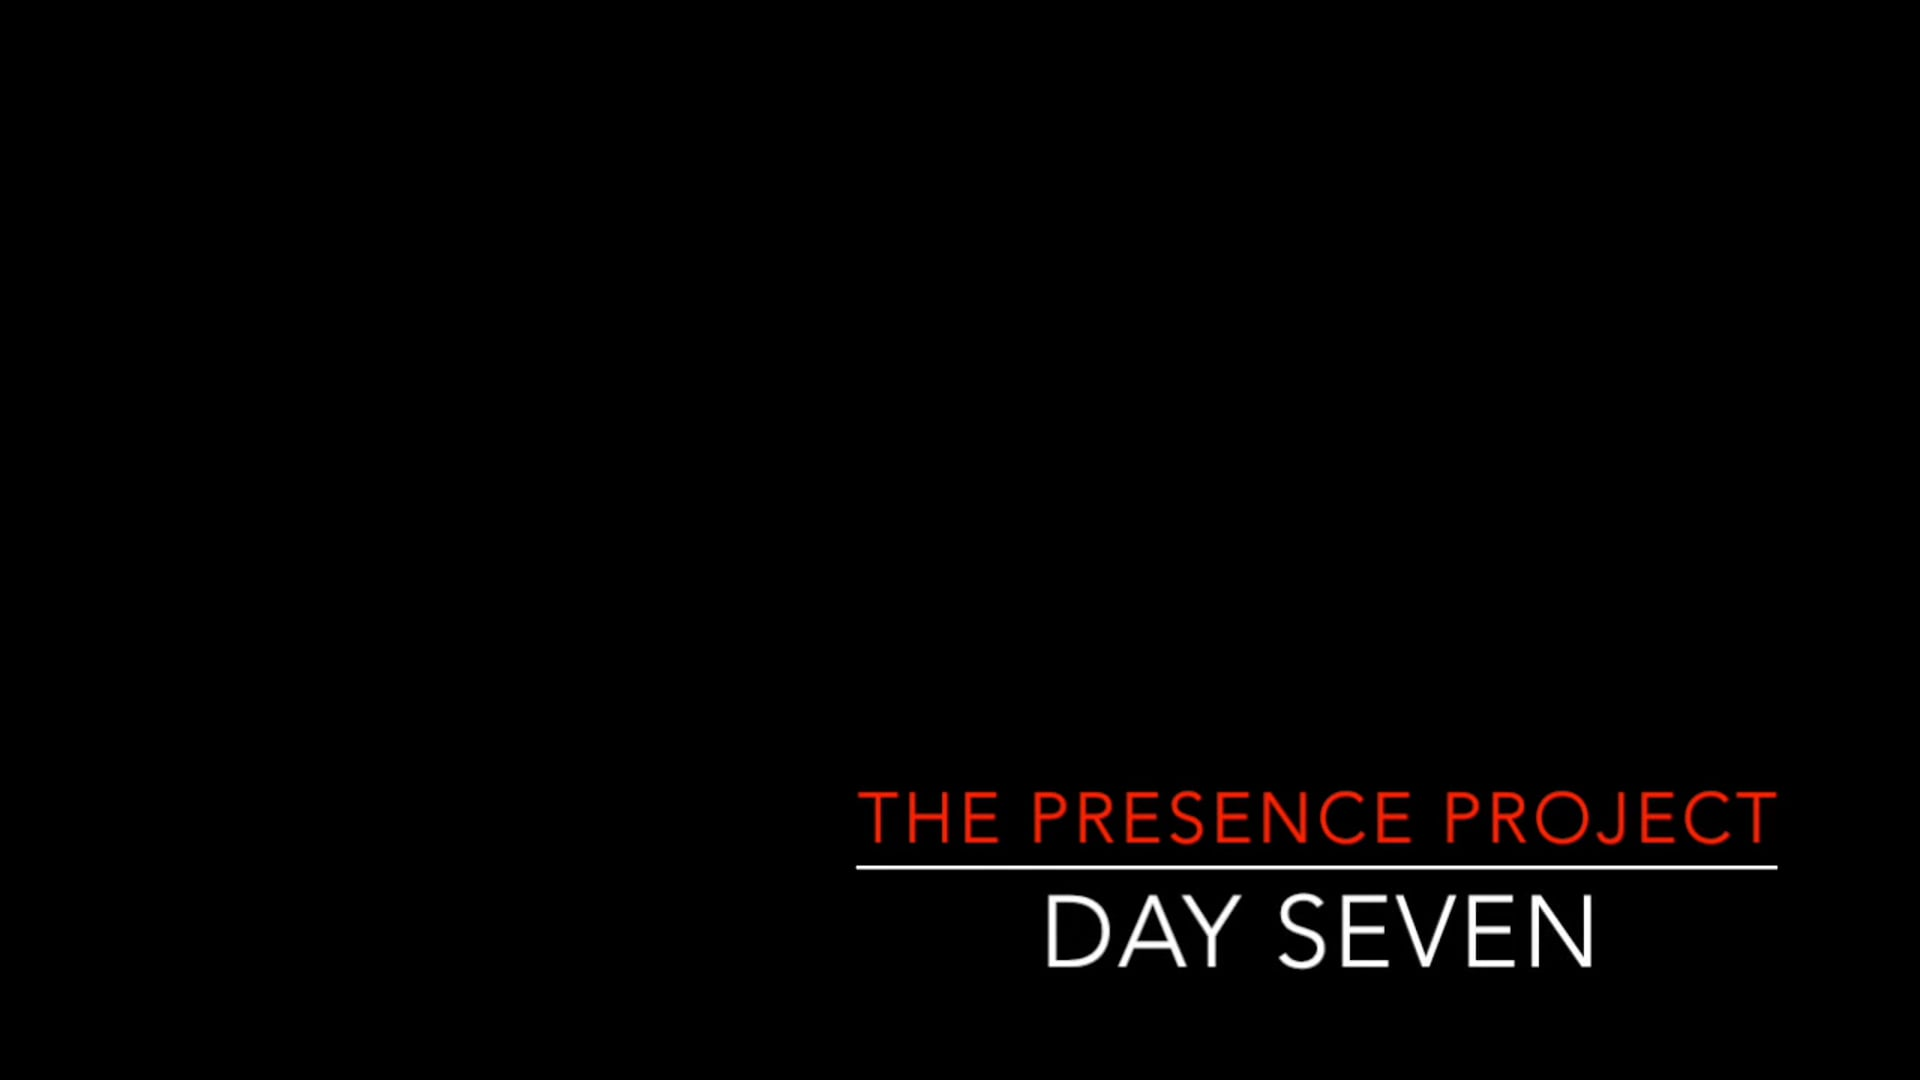 Presence Project, Day 7